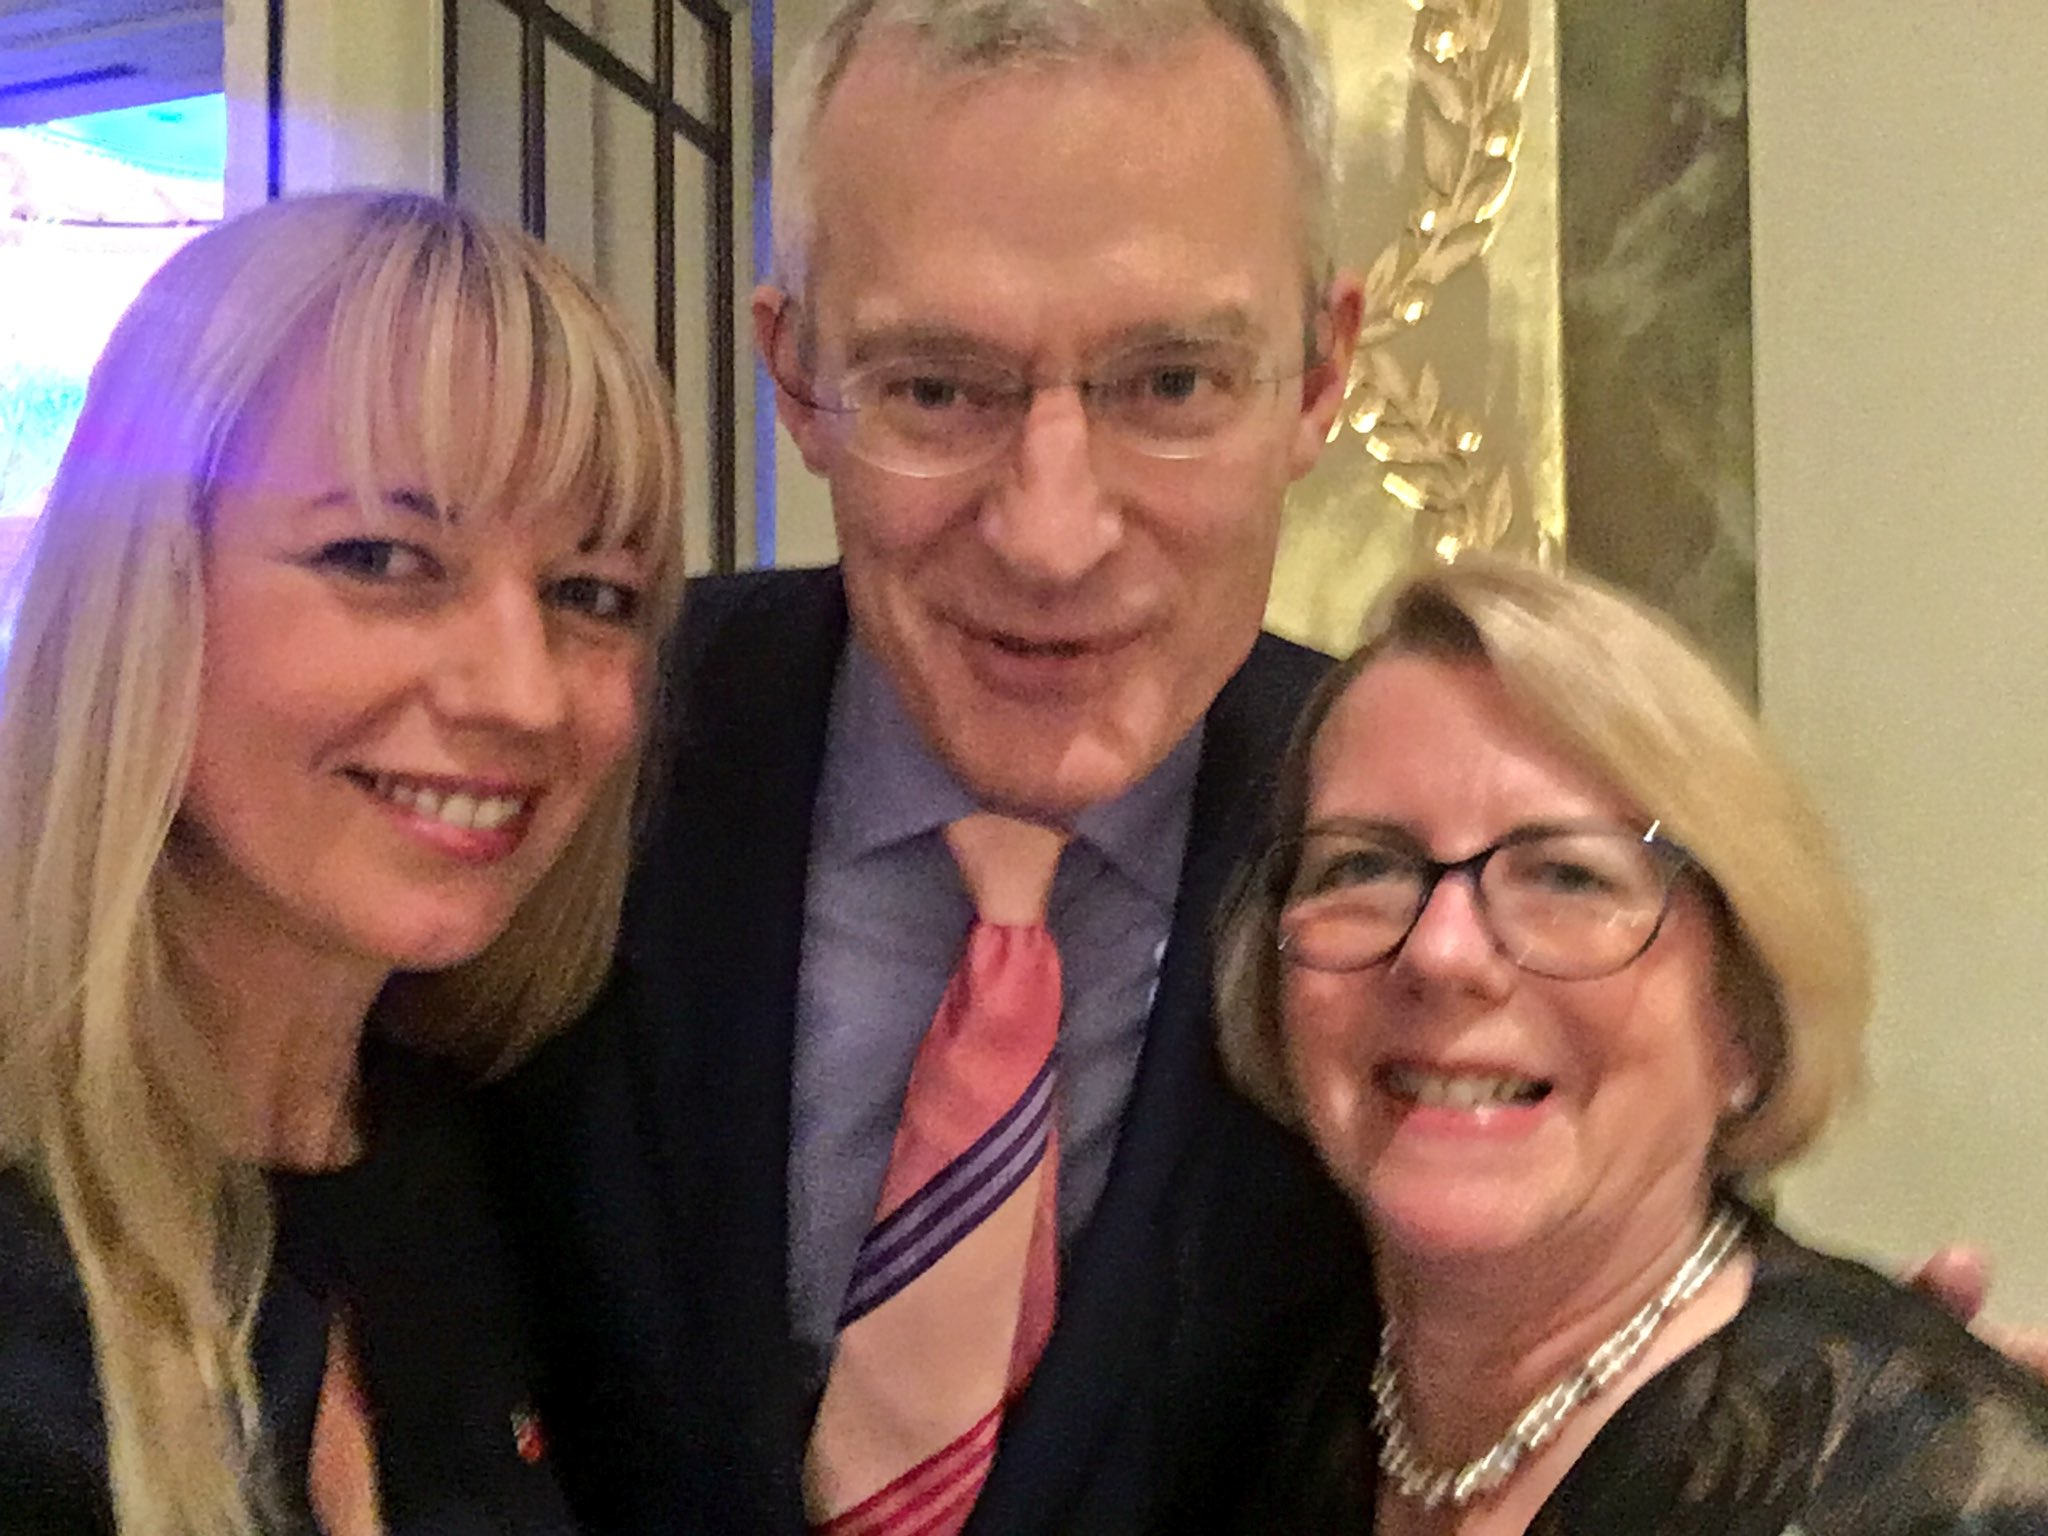 Here's @theJeremyVine enjoying being in a northern sandwich @BBCCiN @BBCRadio2 fundraising lunch https://t.co/46X8sxOFb3